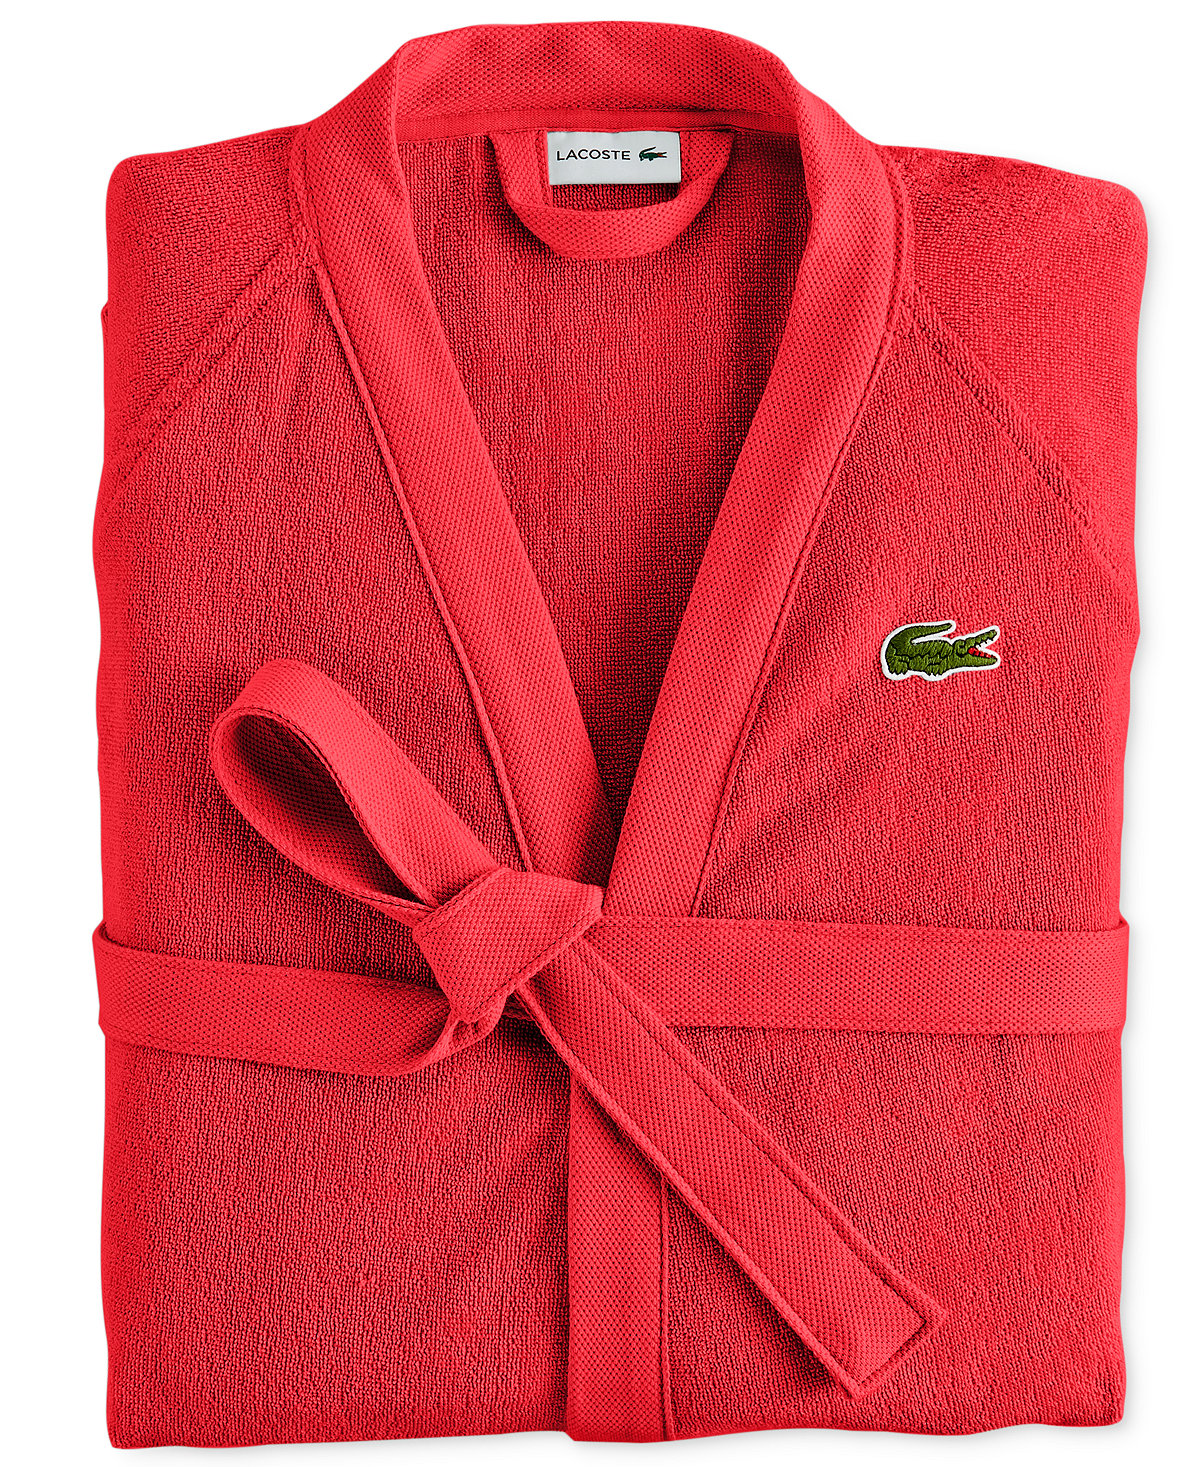 Lacoste Home Pique Bath Robe - I am a big believer in the power of bath robes. I have about three different kinds of robes right now and wear them all the time at home. They're so cozy and it's so much easier than putting clothing if you're just going to the bathroom and then doing some random things around the house and then heading back to bed (which is where you'll find me the entire winter season). It's the perfect gift and I recommend it for everyone on your holiday shopping list.